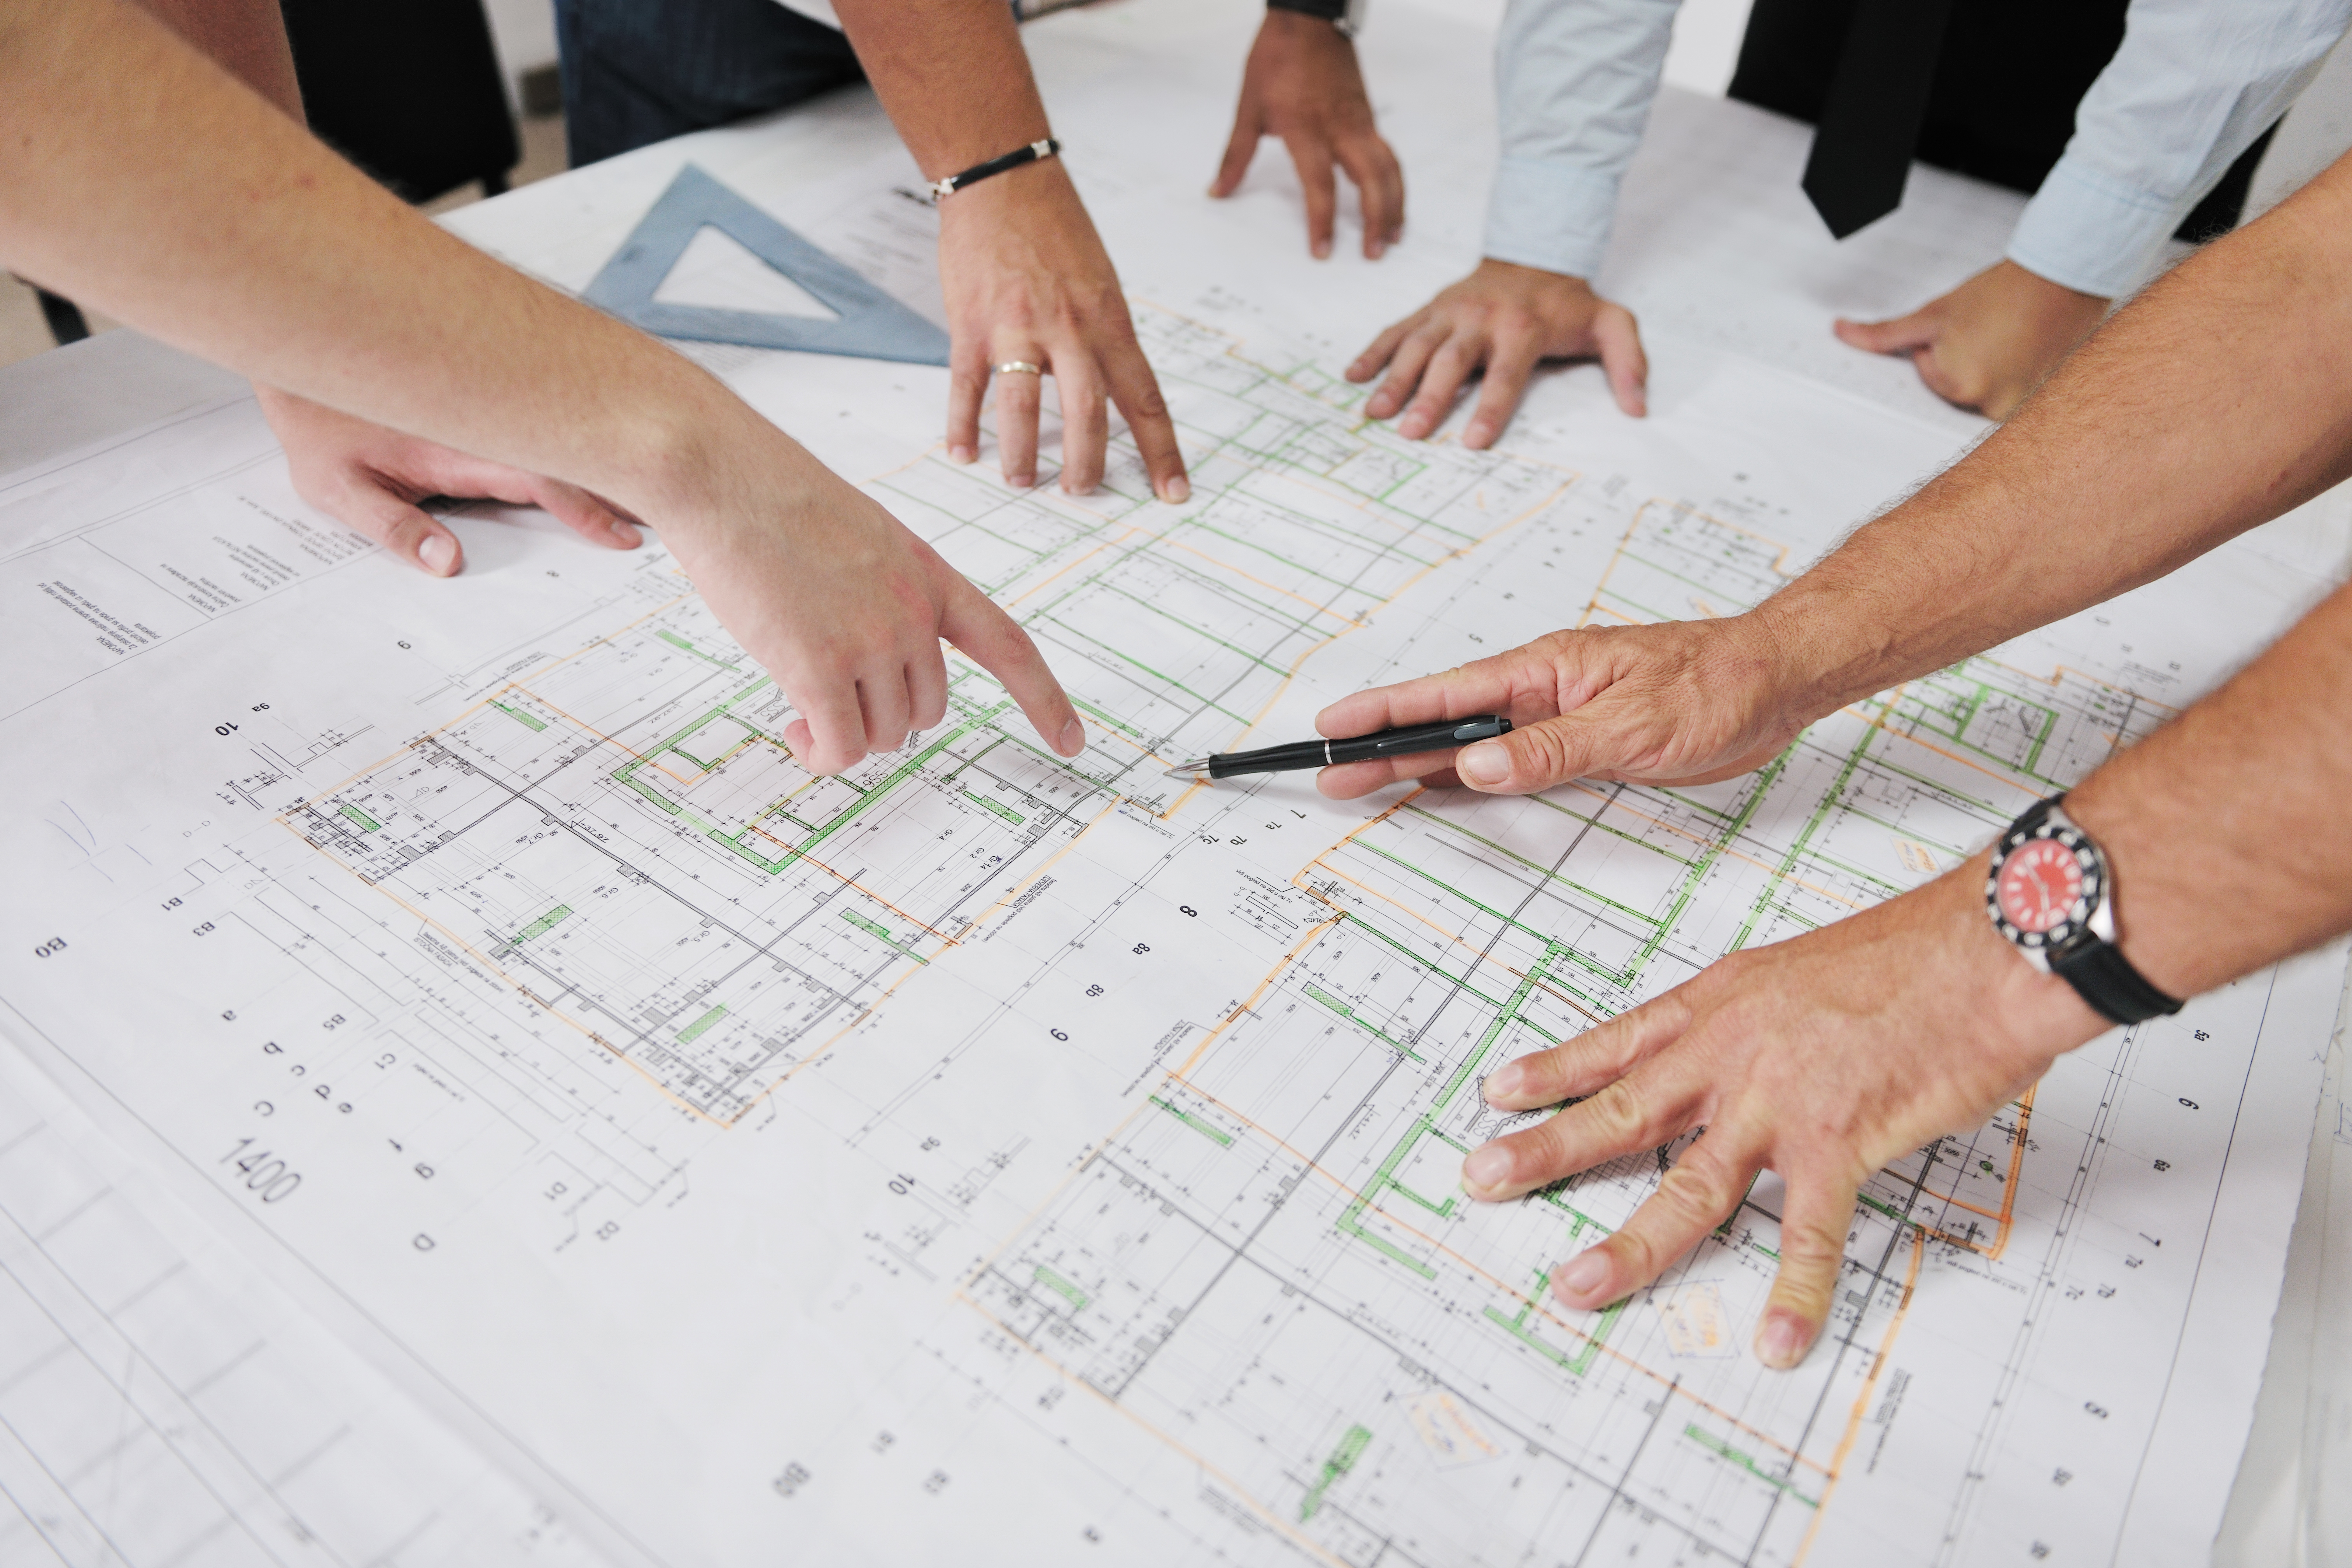 Full scope of architectural and engineering and home designer services team